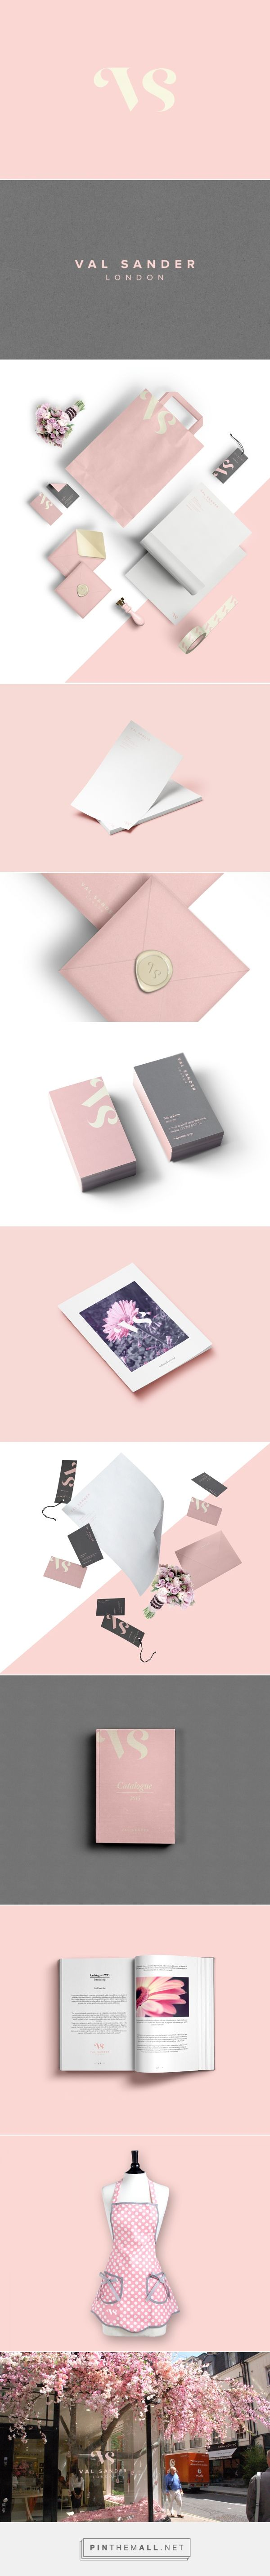 Val Sander's flower shop on Behance